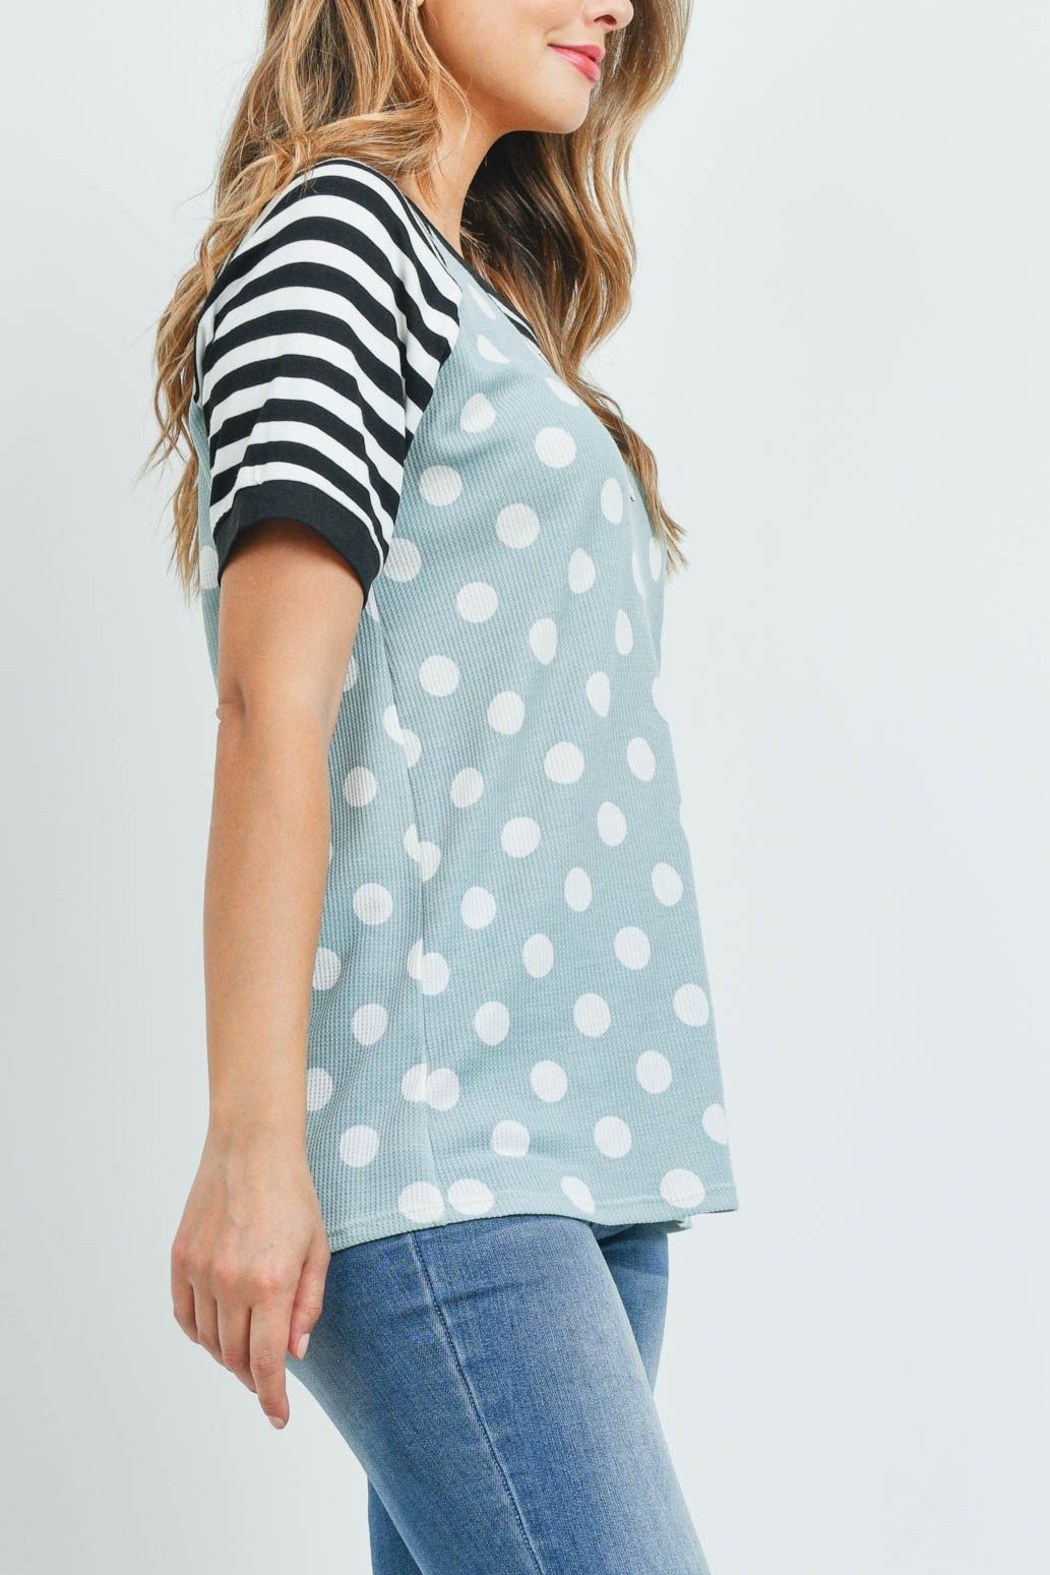 Riah Fashion Hermal-Polka-Dot-Stripes-Neck-And-Sleeve-Top - Side Cropped Image